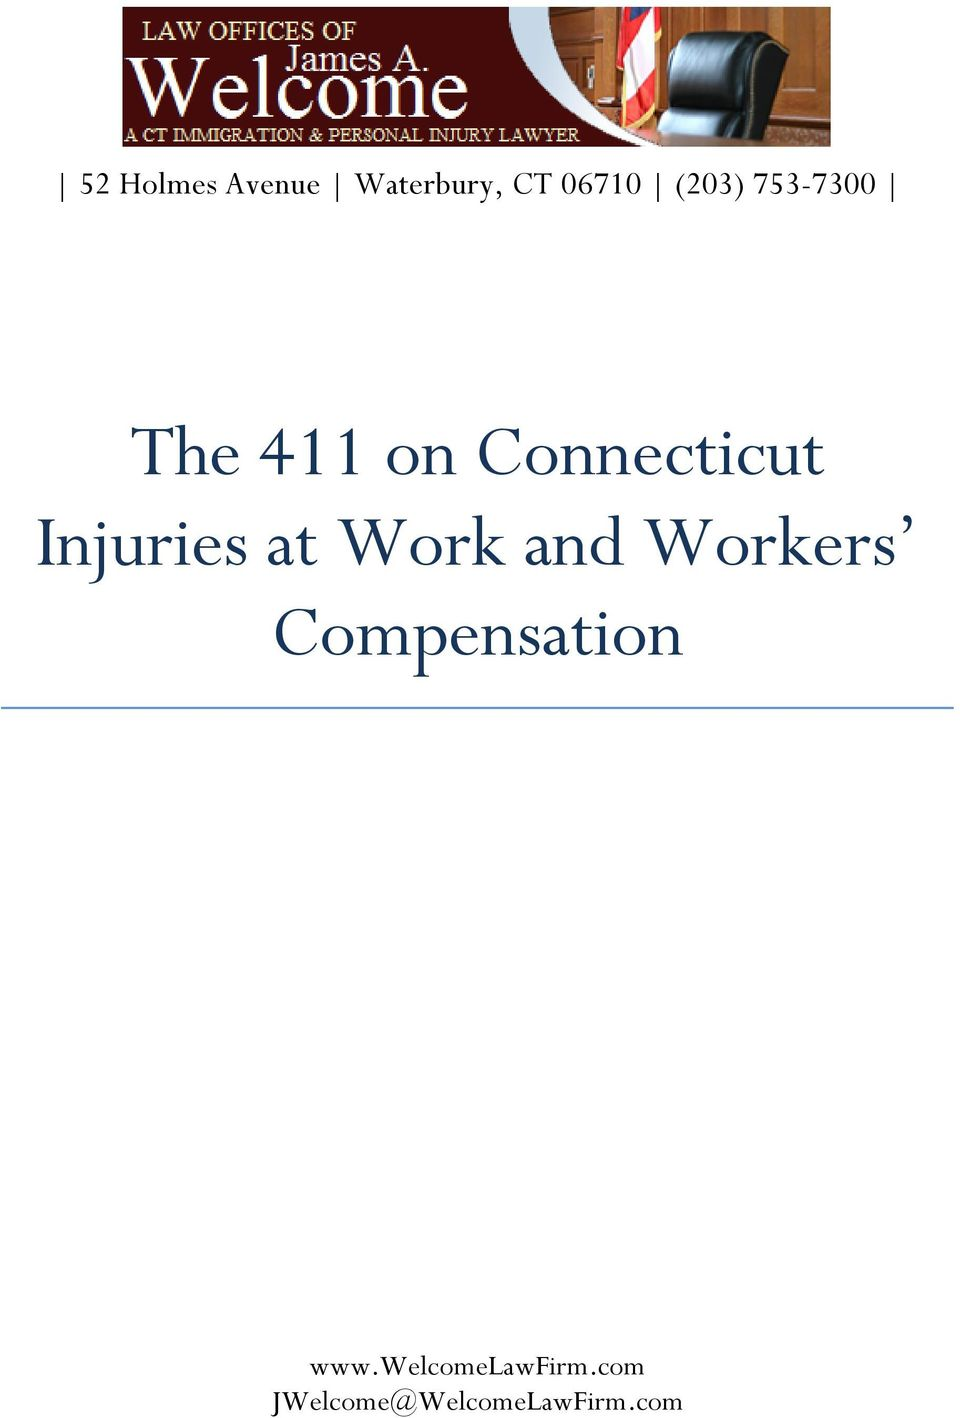 Injuries at Work and Workers Compensation